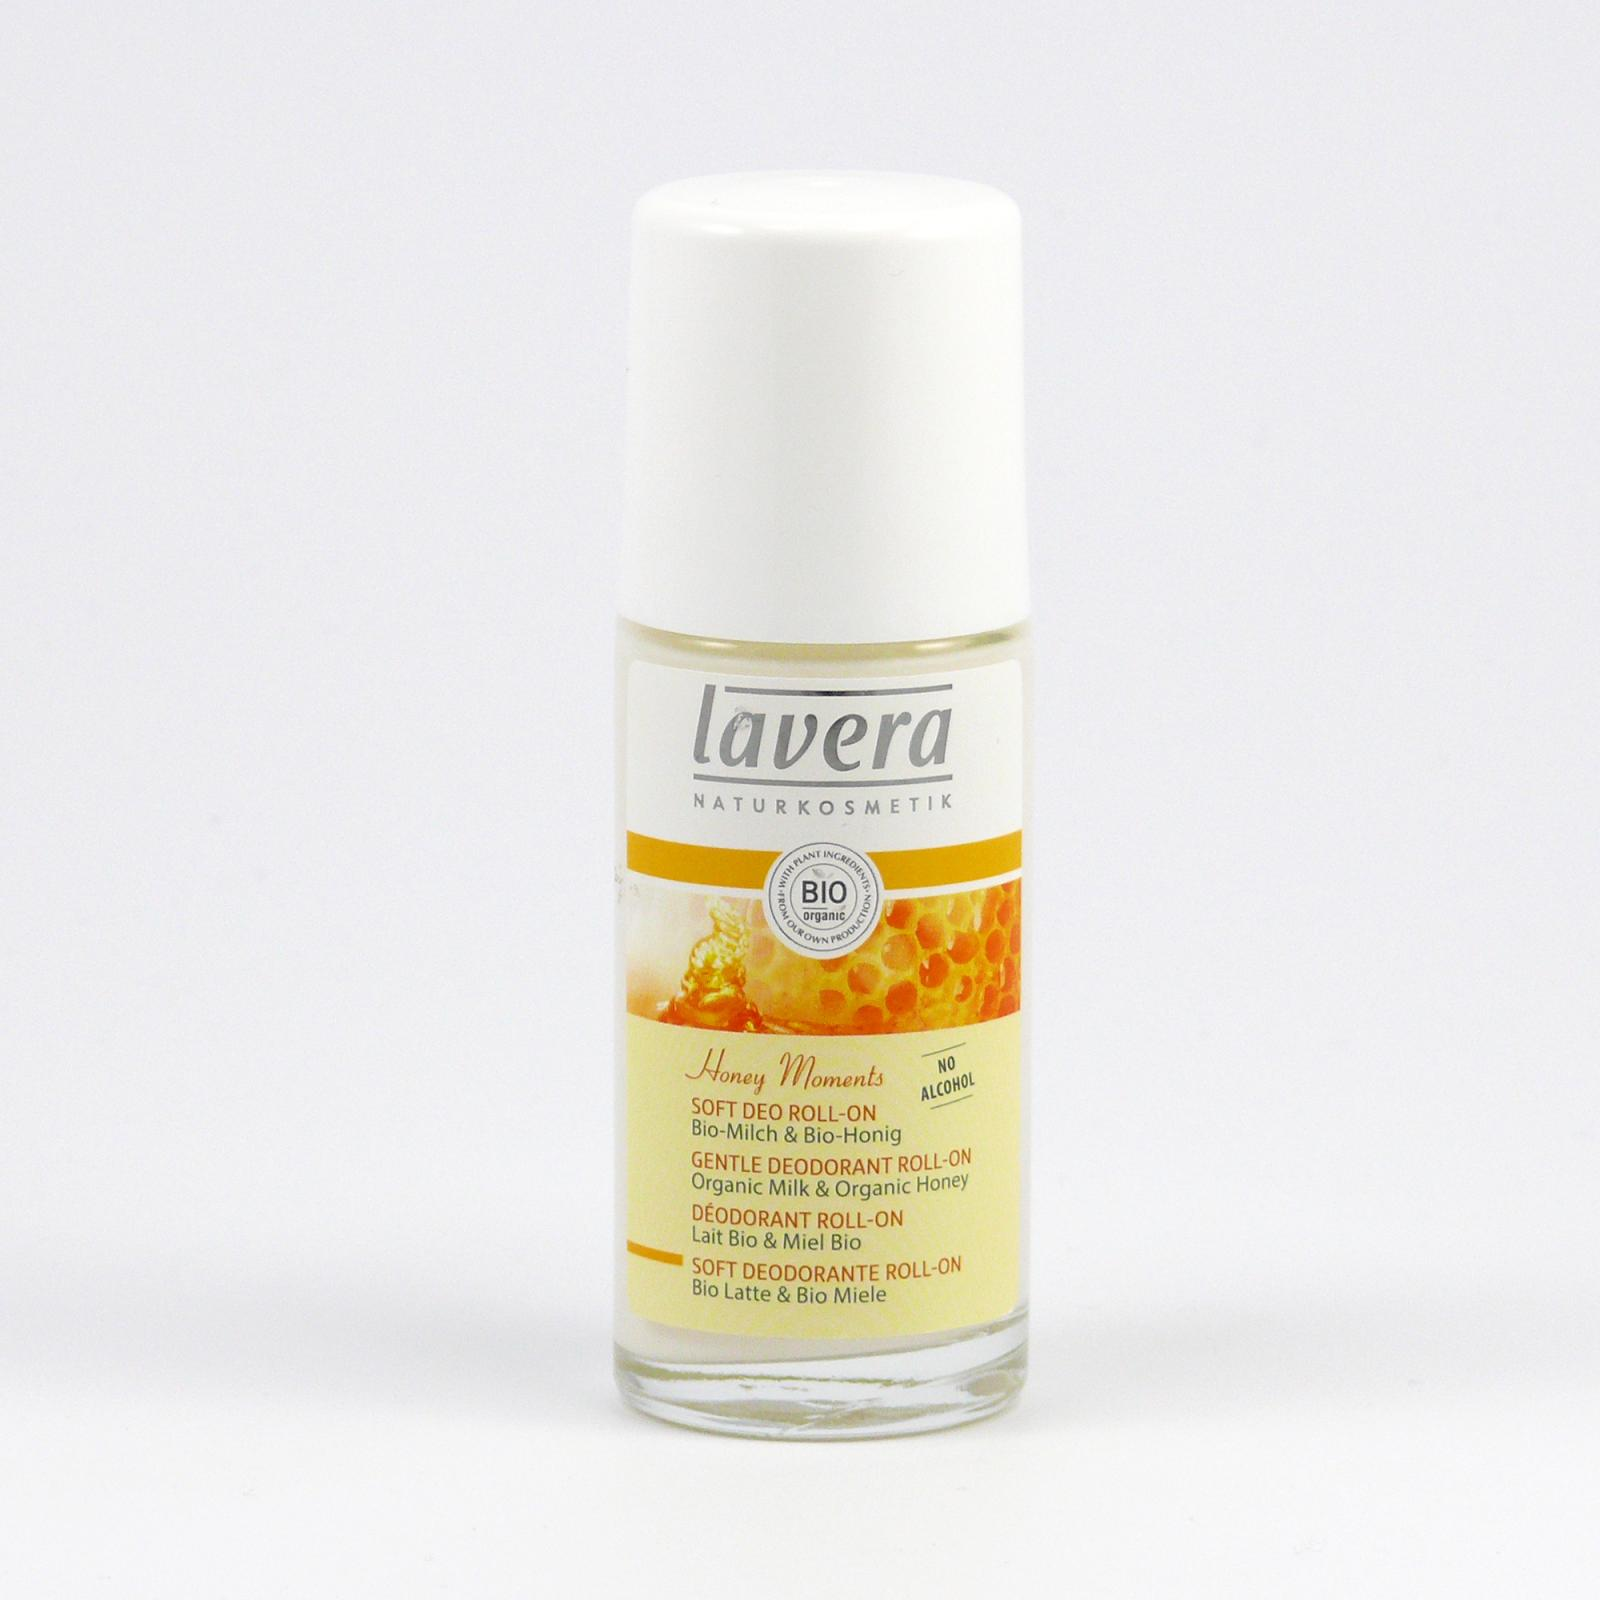 Lavera Deo kulička mléko a med, Body Spa 50 ml